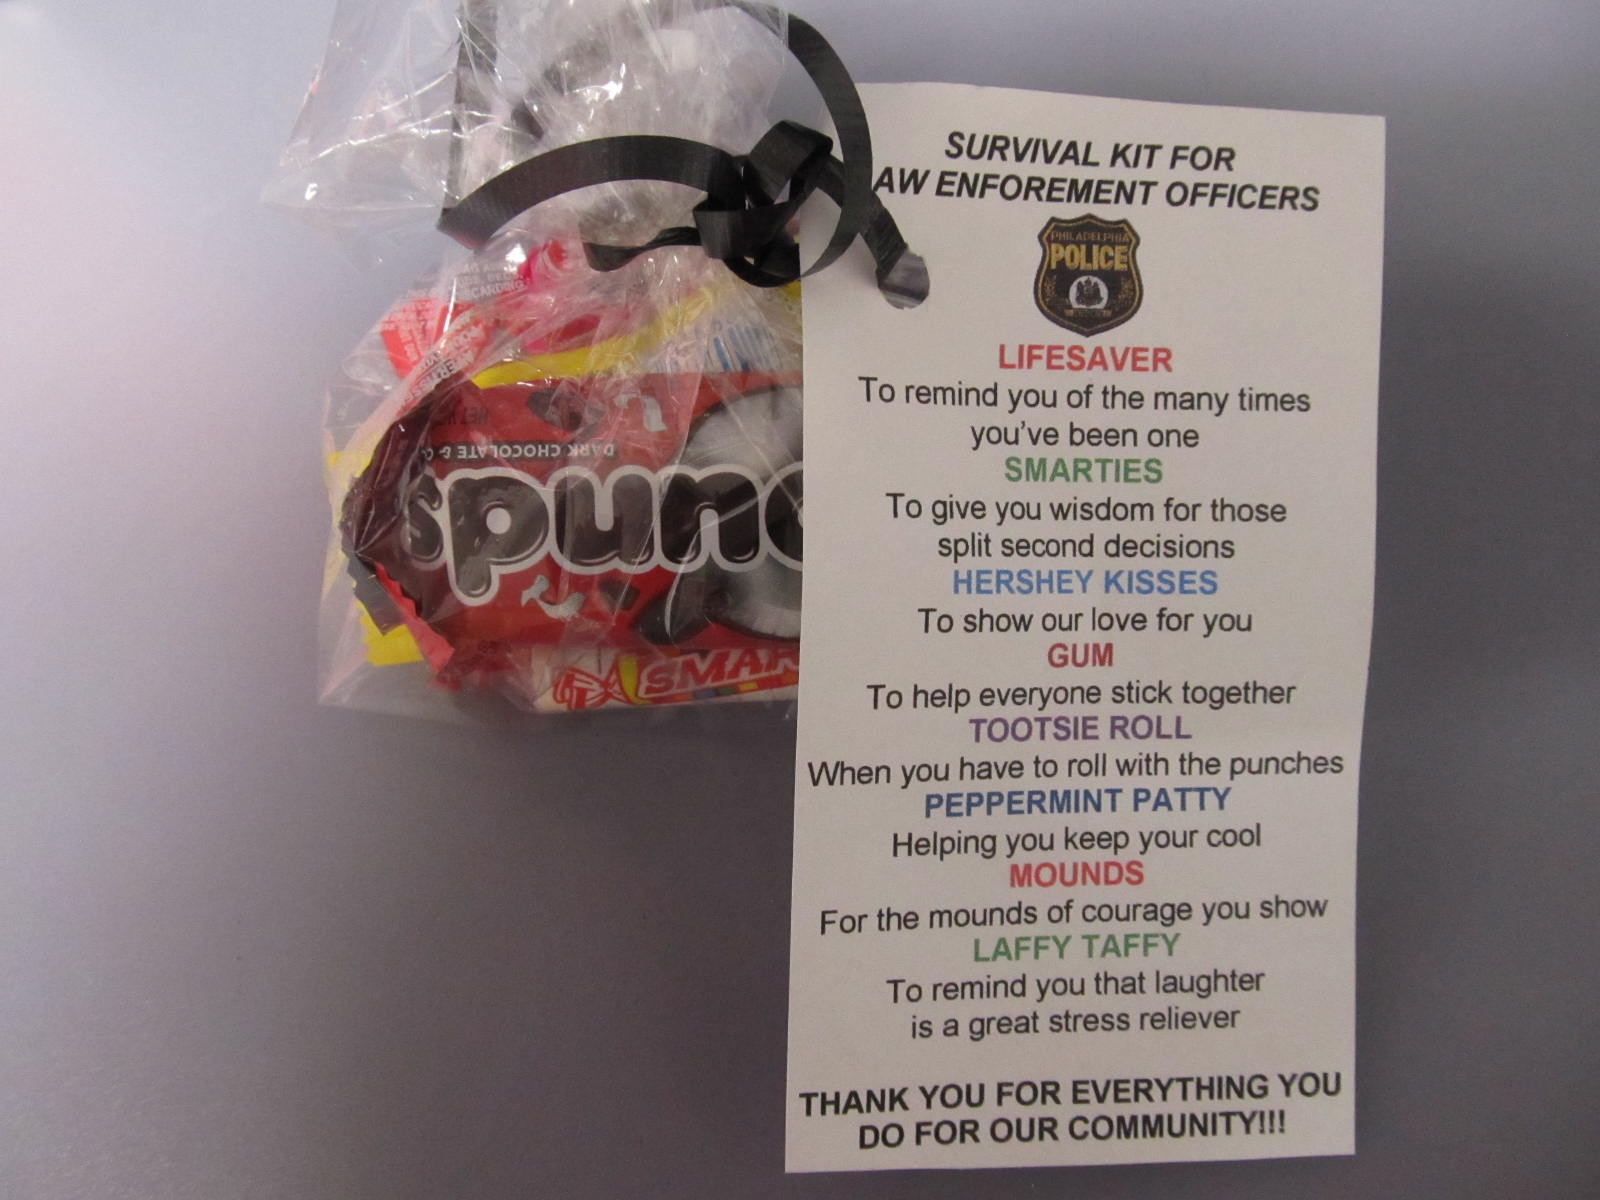 Aberdeen Police Department Sends Thanks for Survival Kit, and Local